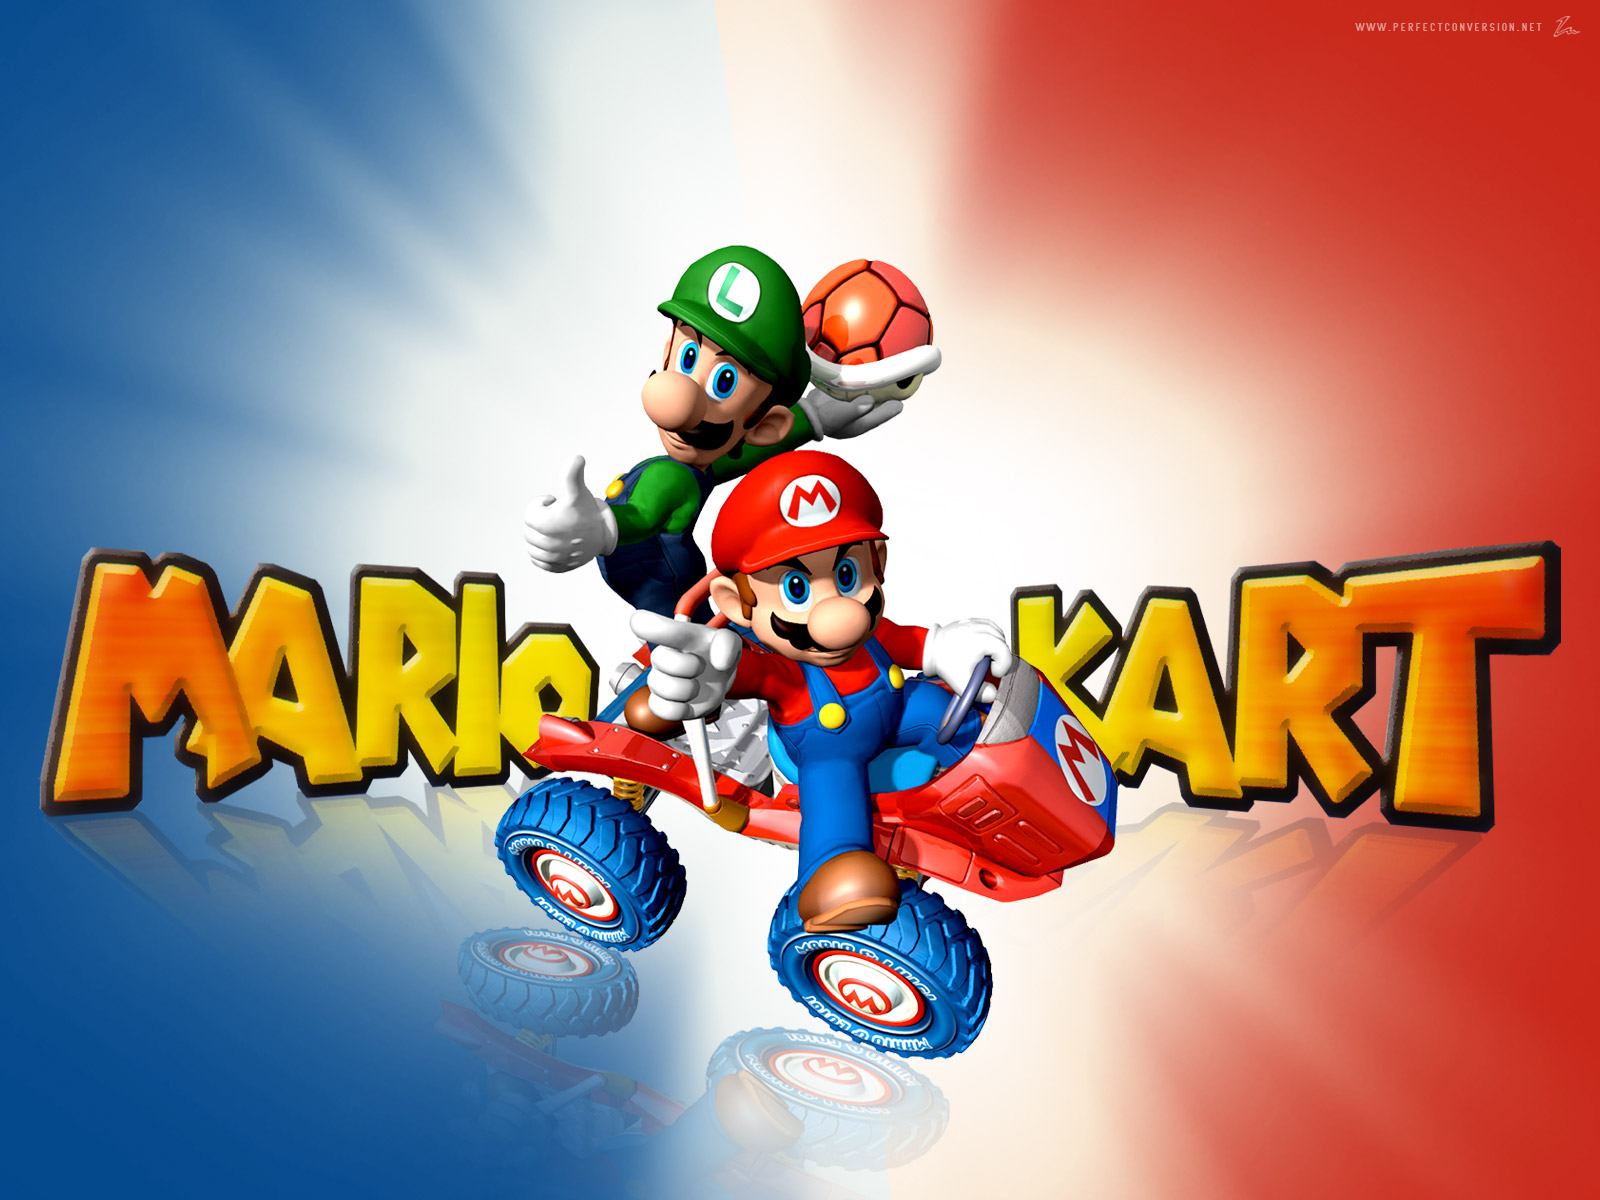 Mario Kart Double Dash Wallpaper And Background Image 1600x1200 Id 569646 Wallpaper Abyss